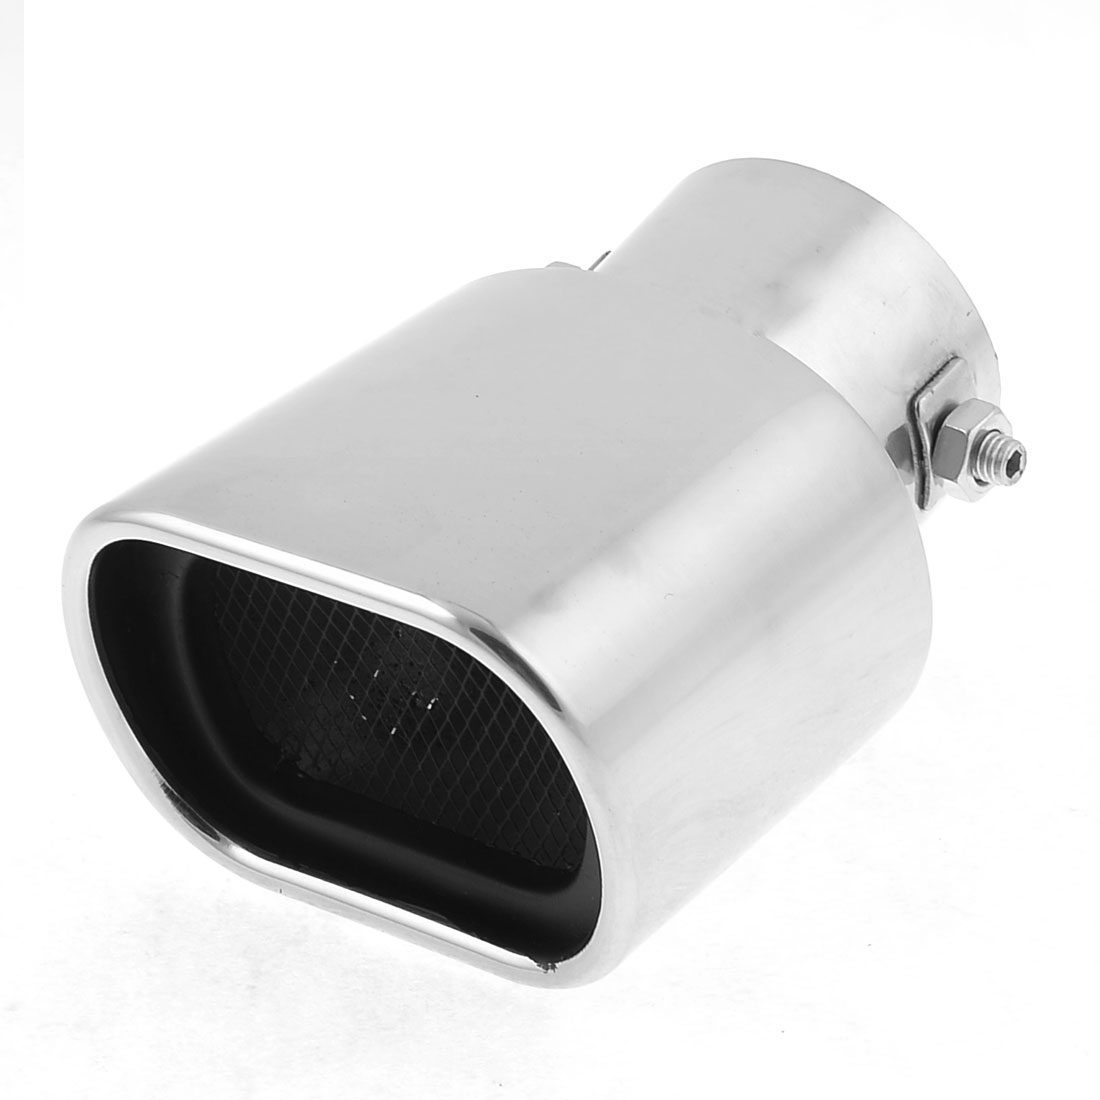 Car Rectangel Outlet Stainless Steel Bending Exhaust Muffler Pipe Silver Tone